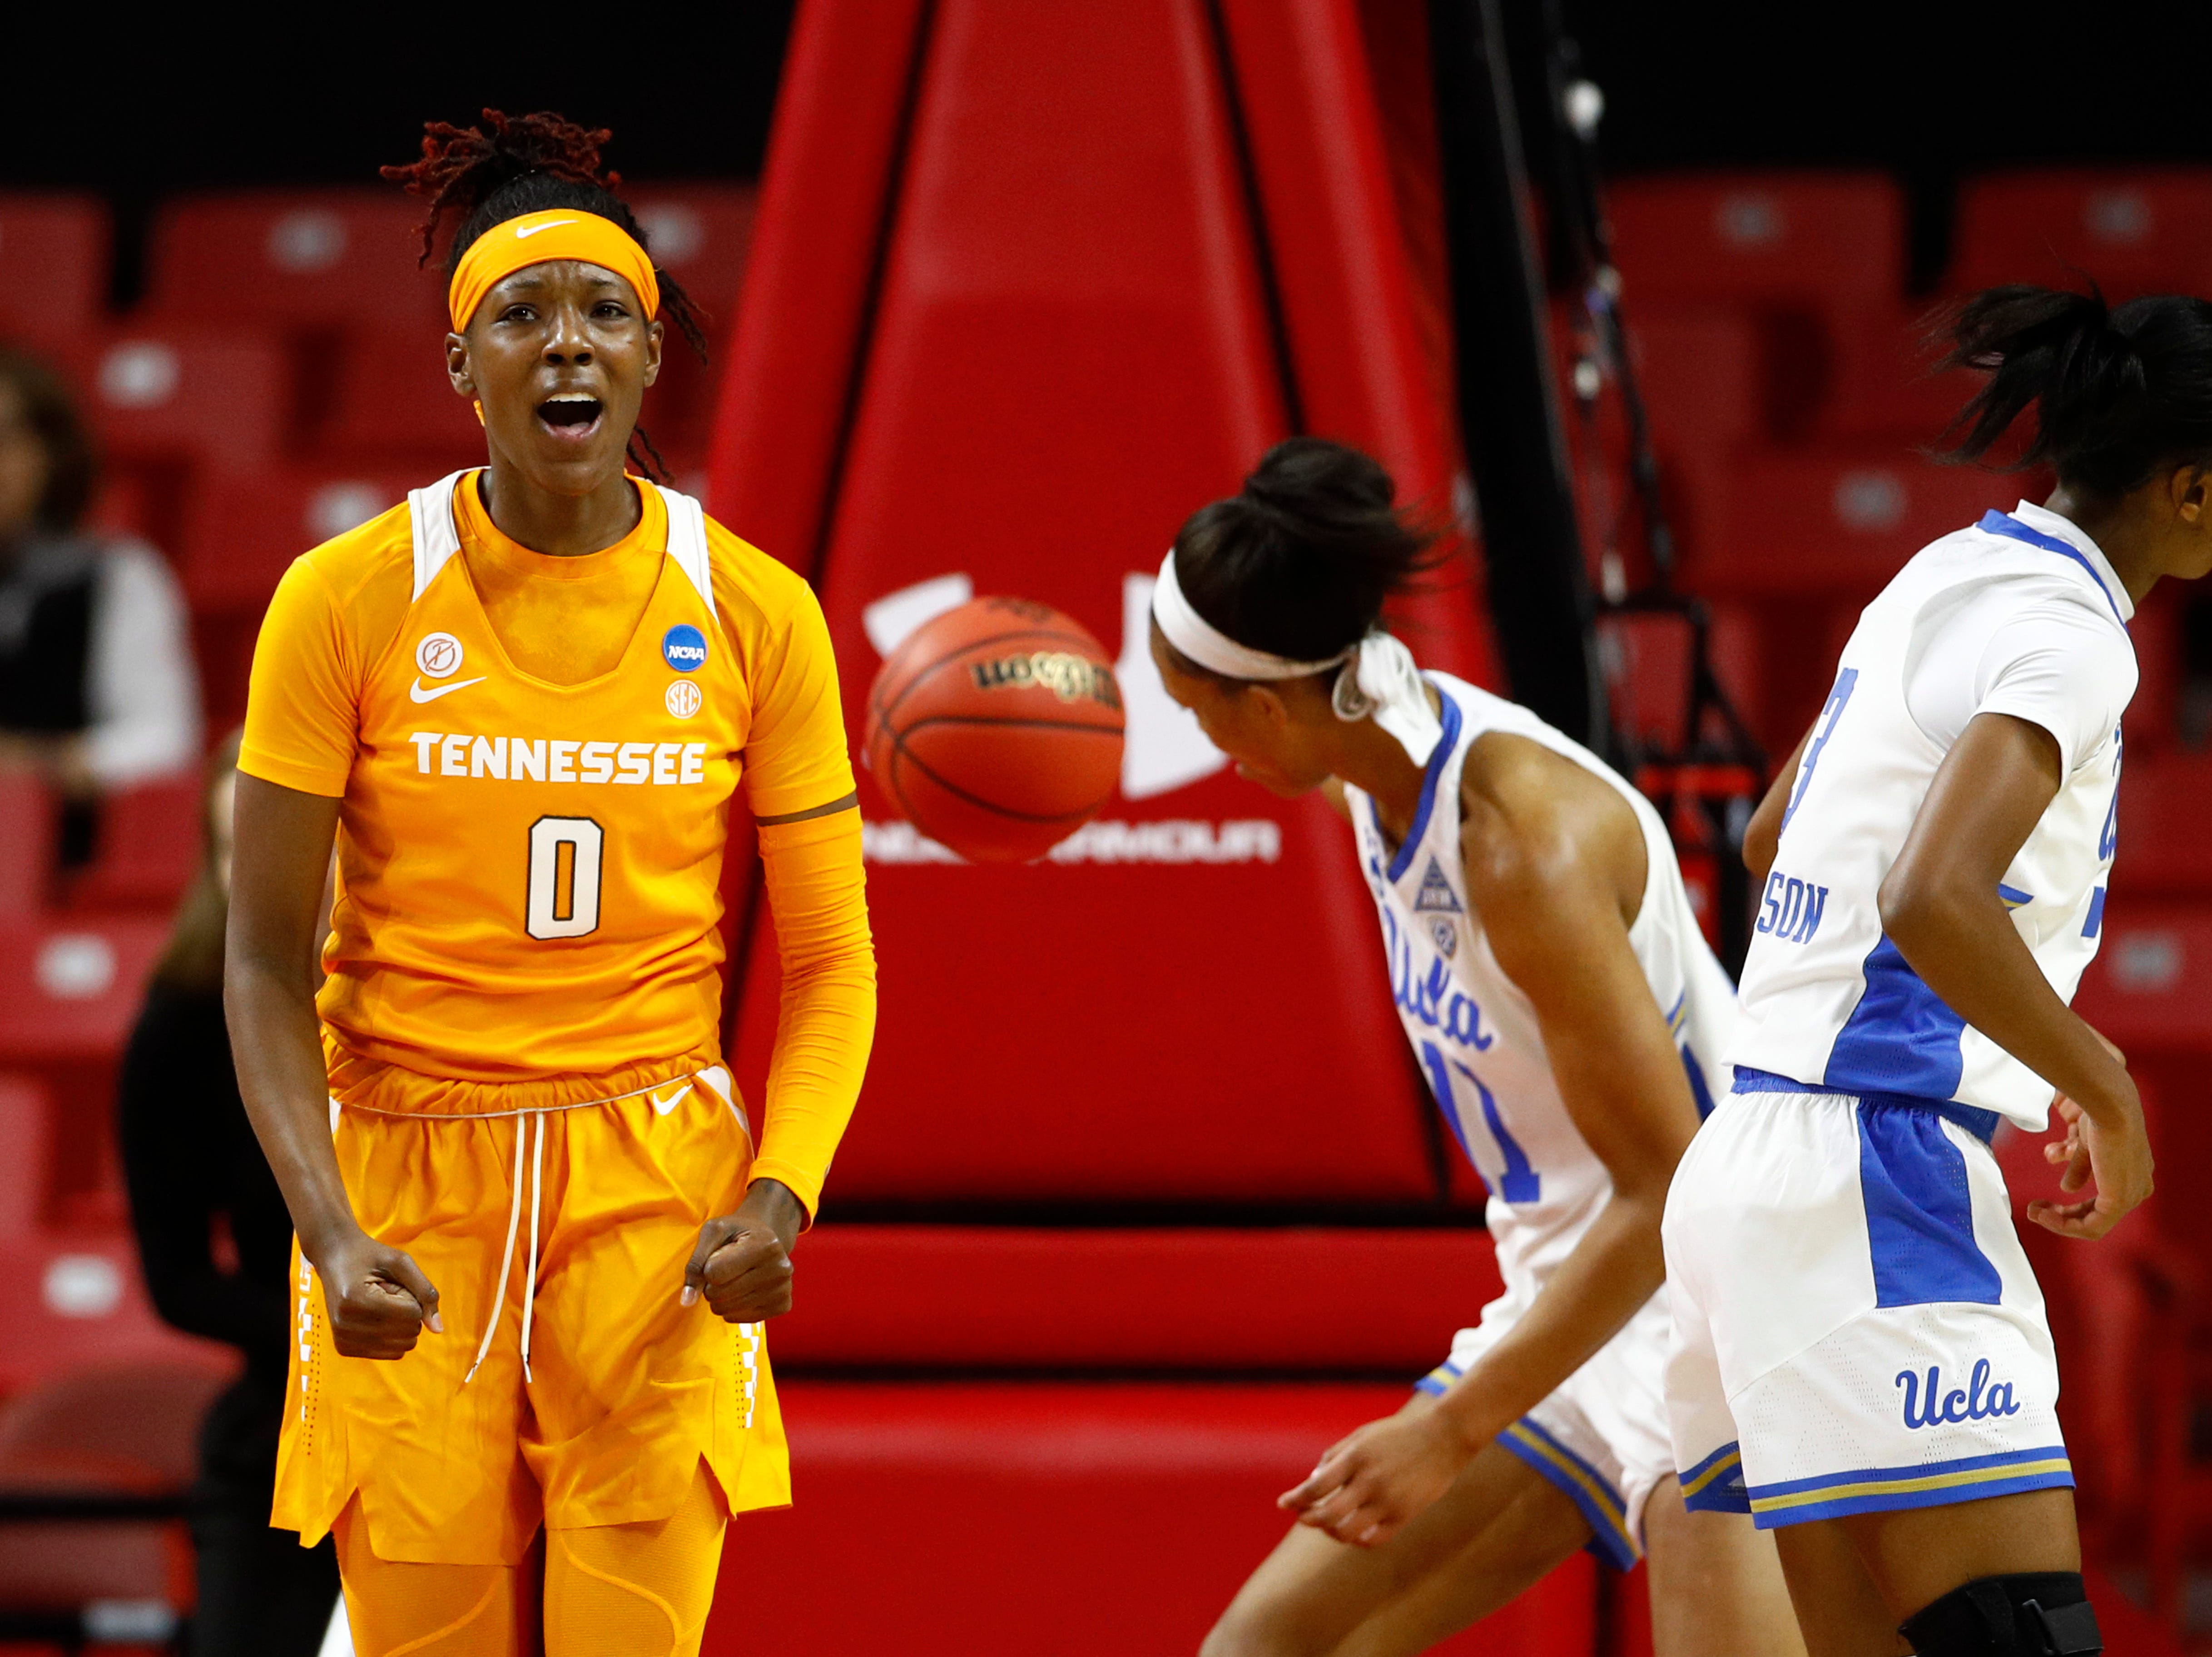 Tennessee guard Rennia Davis (0) reacts after scoring in the first half of a first-round game against UCLA in the NCAA women's college basketball tournament, Saturday, March 23, 2019, in College Park, Md.